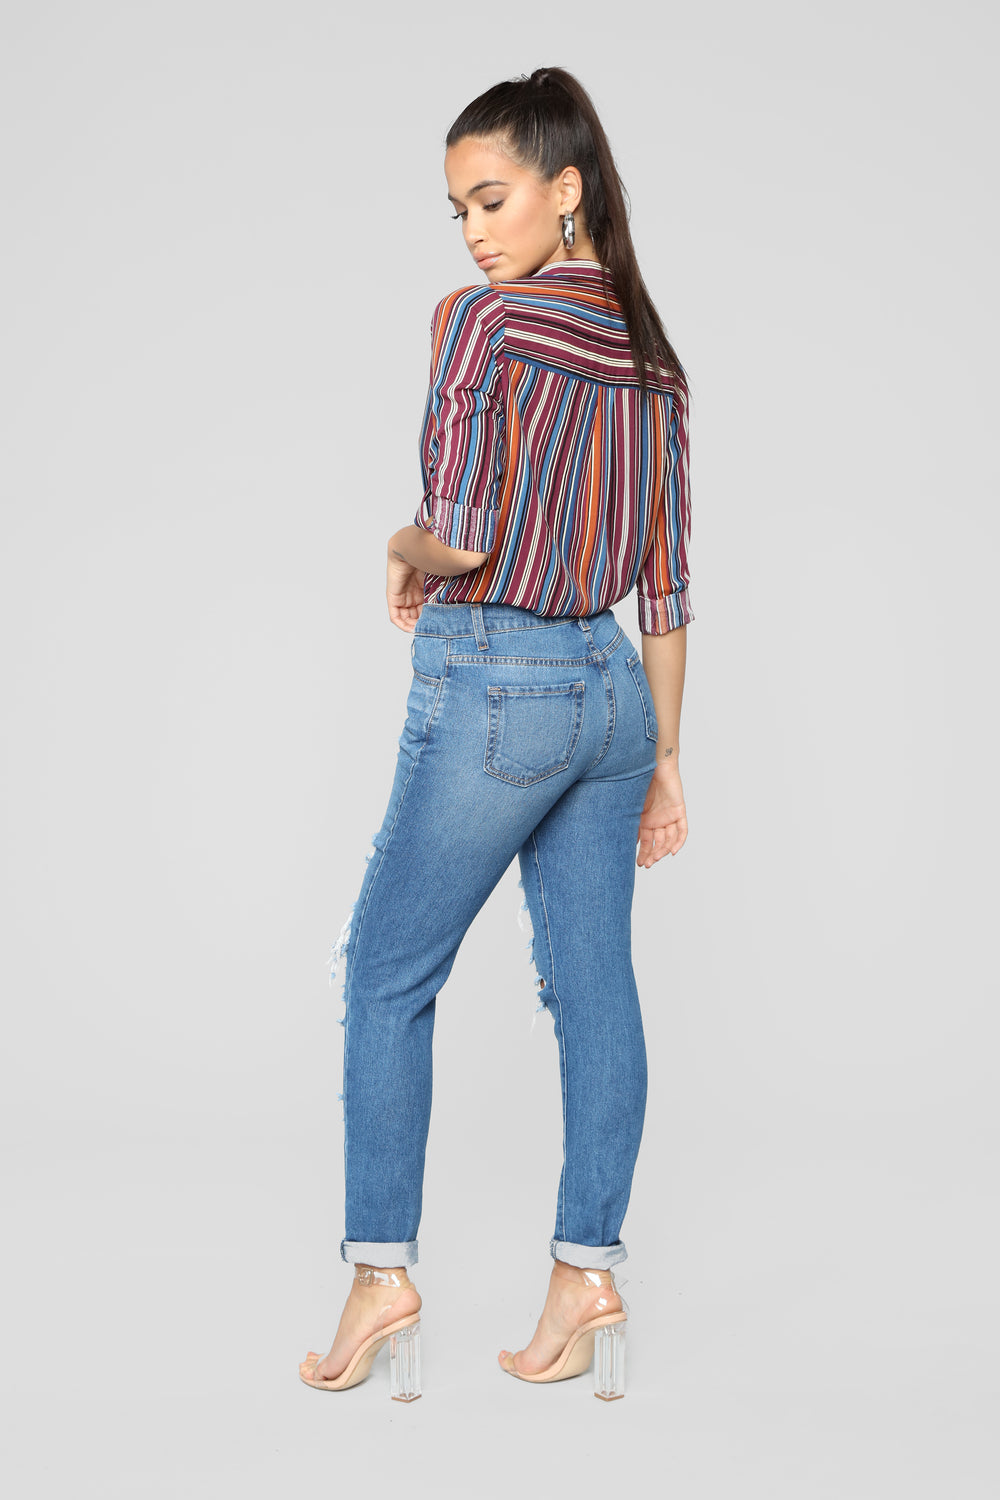 Casual Lover Collared Stripe Top - MultiColor